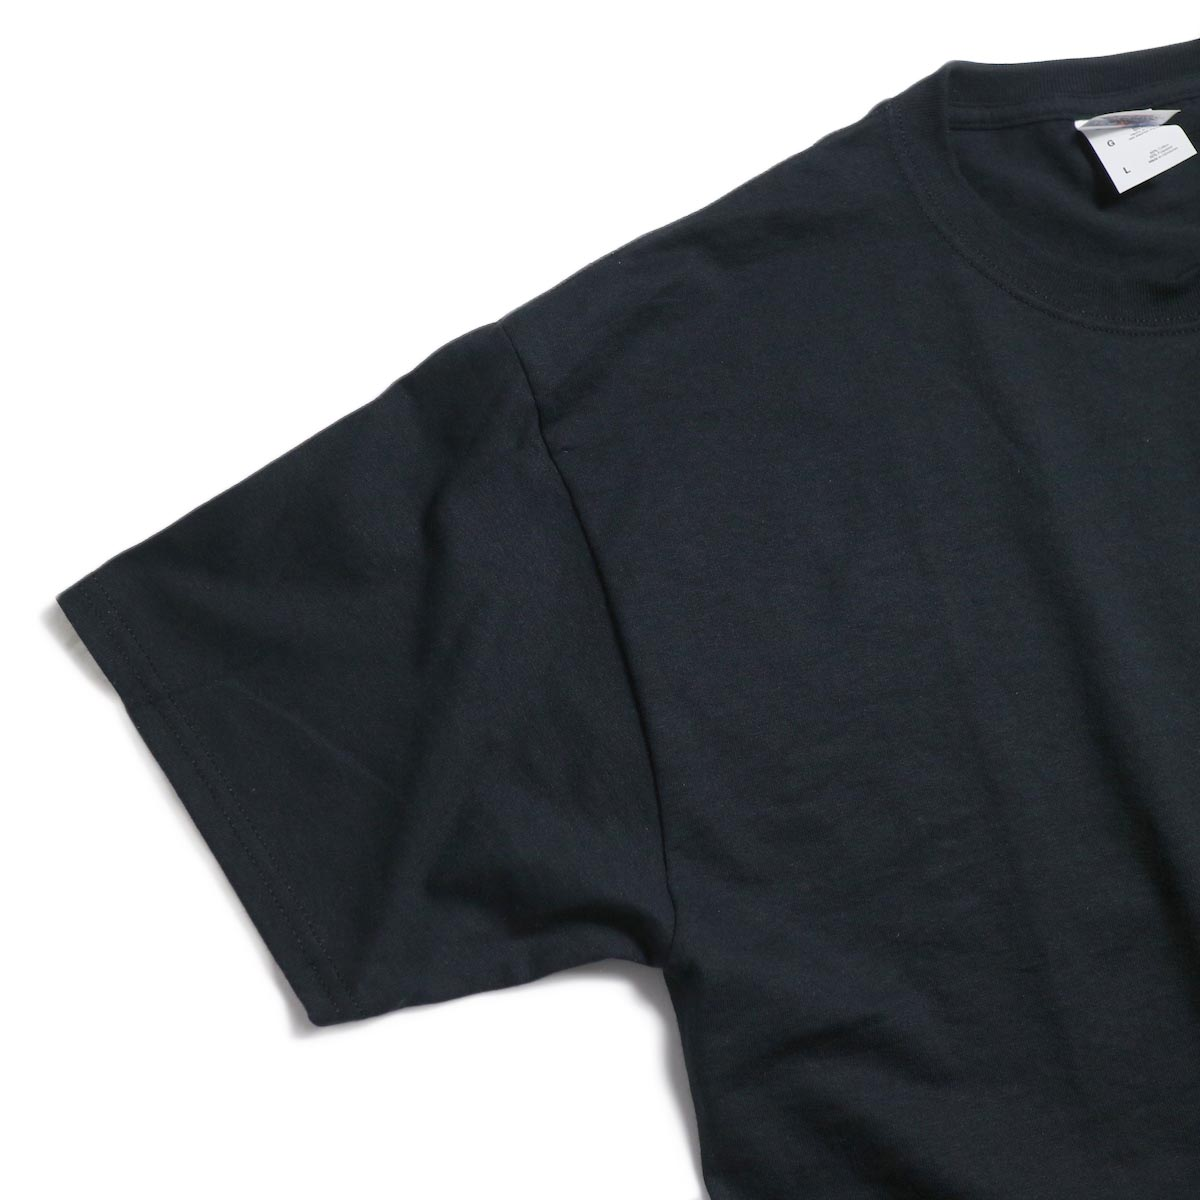 N.HOOLYWOOD × JERZEES  / 191-CS44-070 Short Sleeve Tee -Black 袖